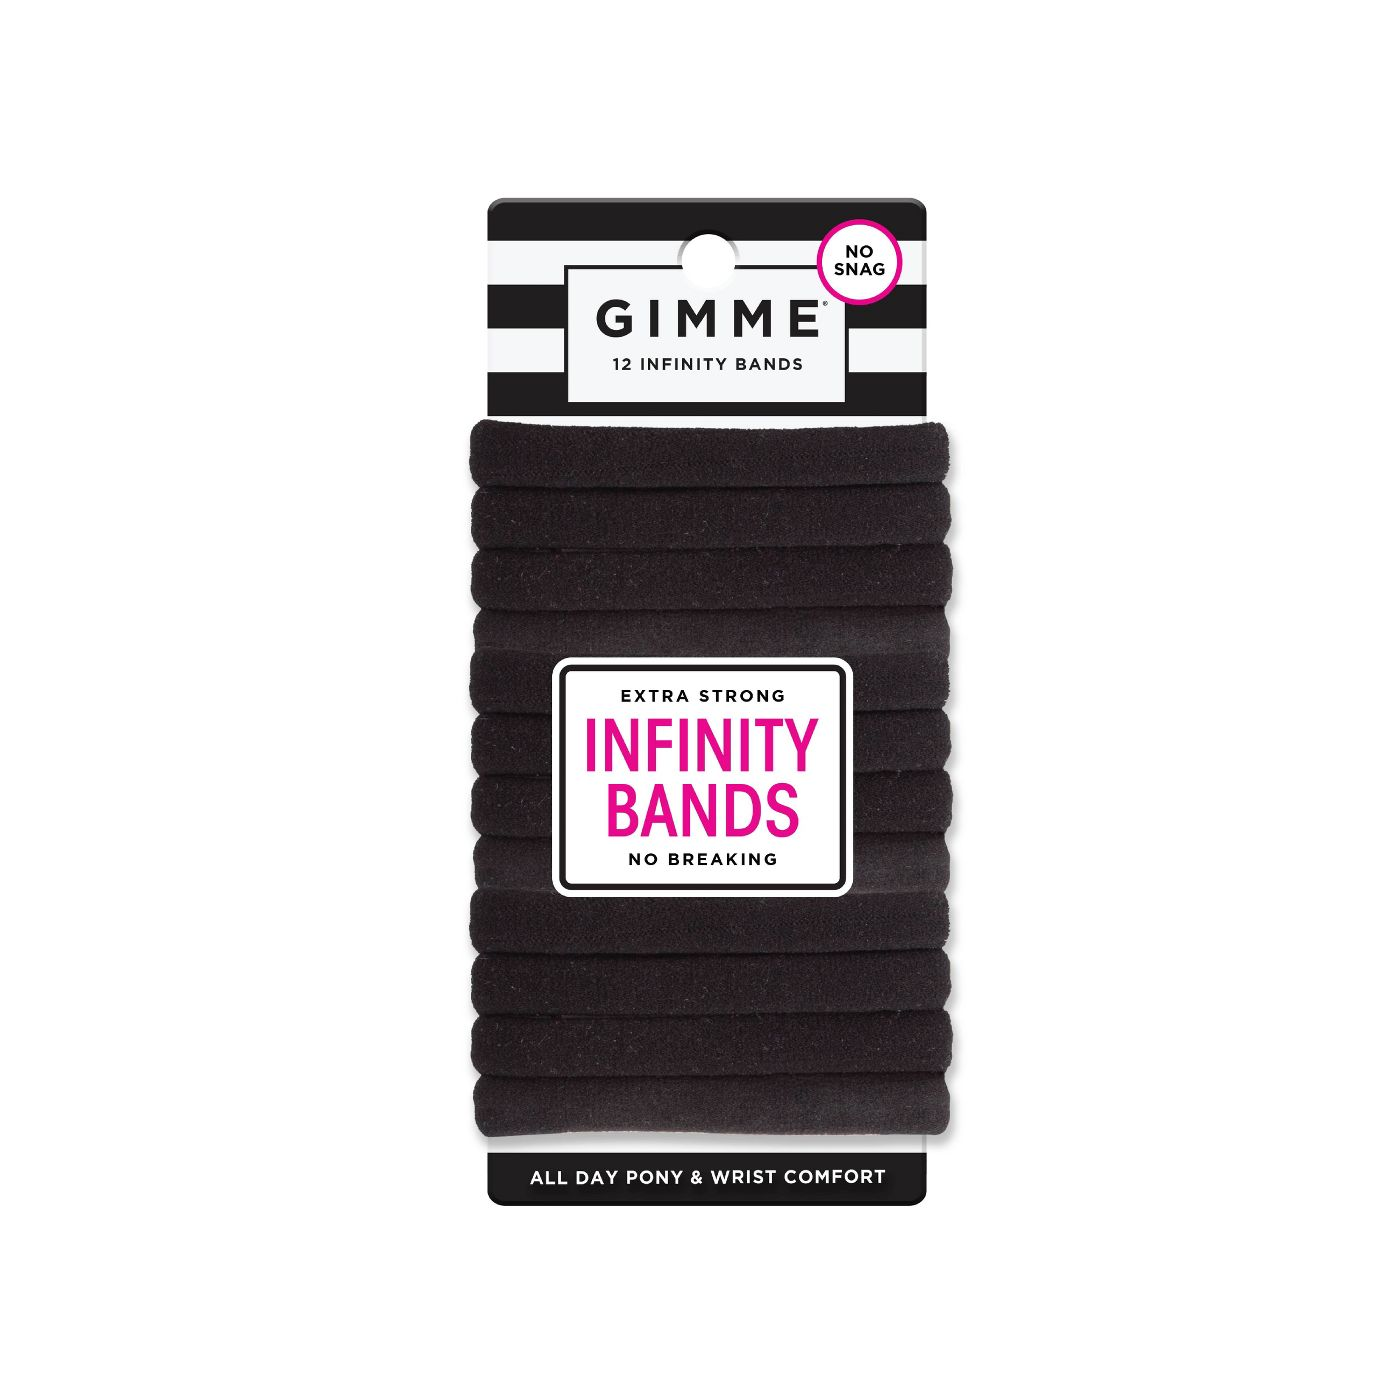 Gimme Clips Infinity Hair Bands - Black - 12ct - image 1 of 5